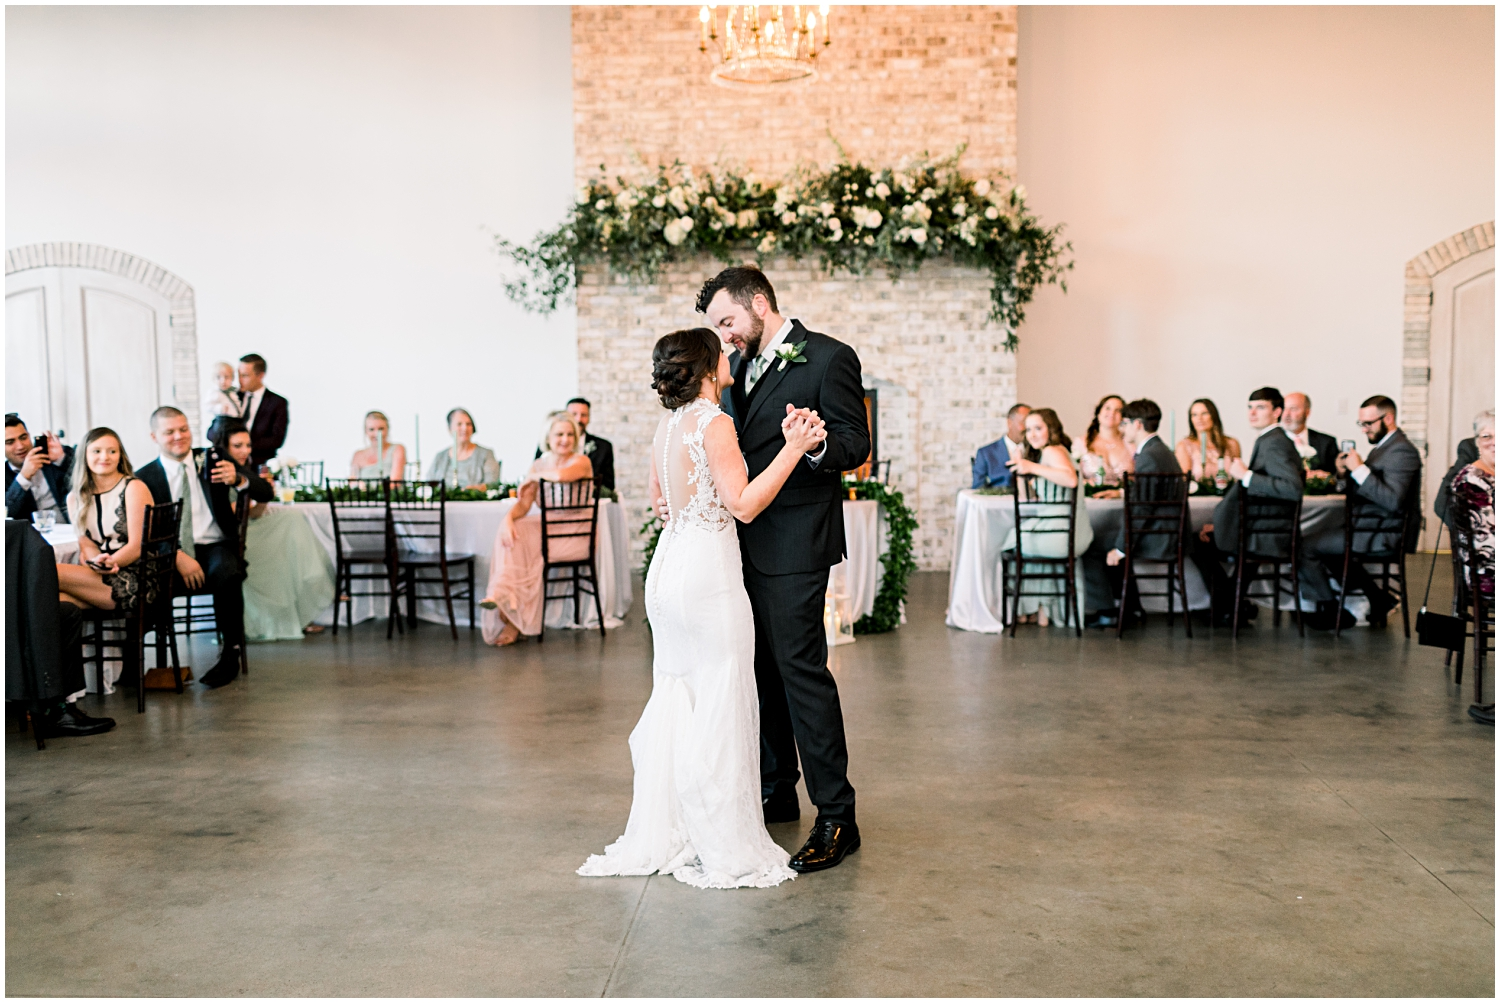 Wrightsville Manor Wedding Venue, Downtown Wilmington NC Wedding_Erin L. Taylor Photography_0042.jpg